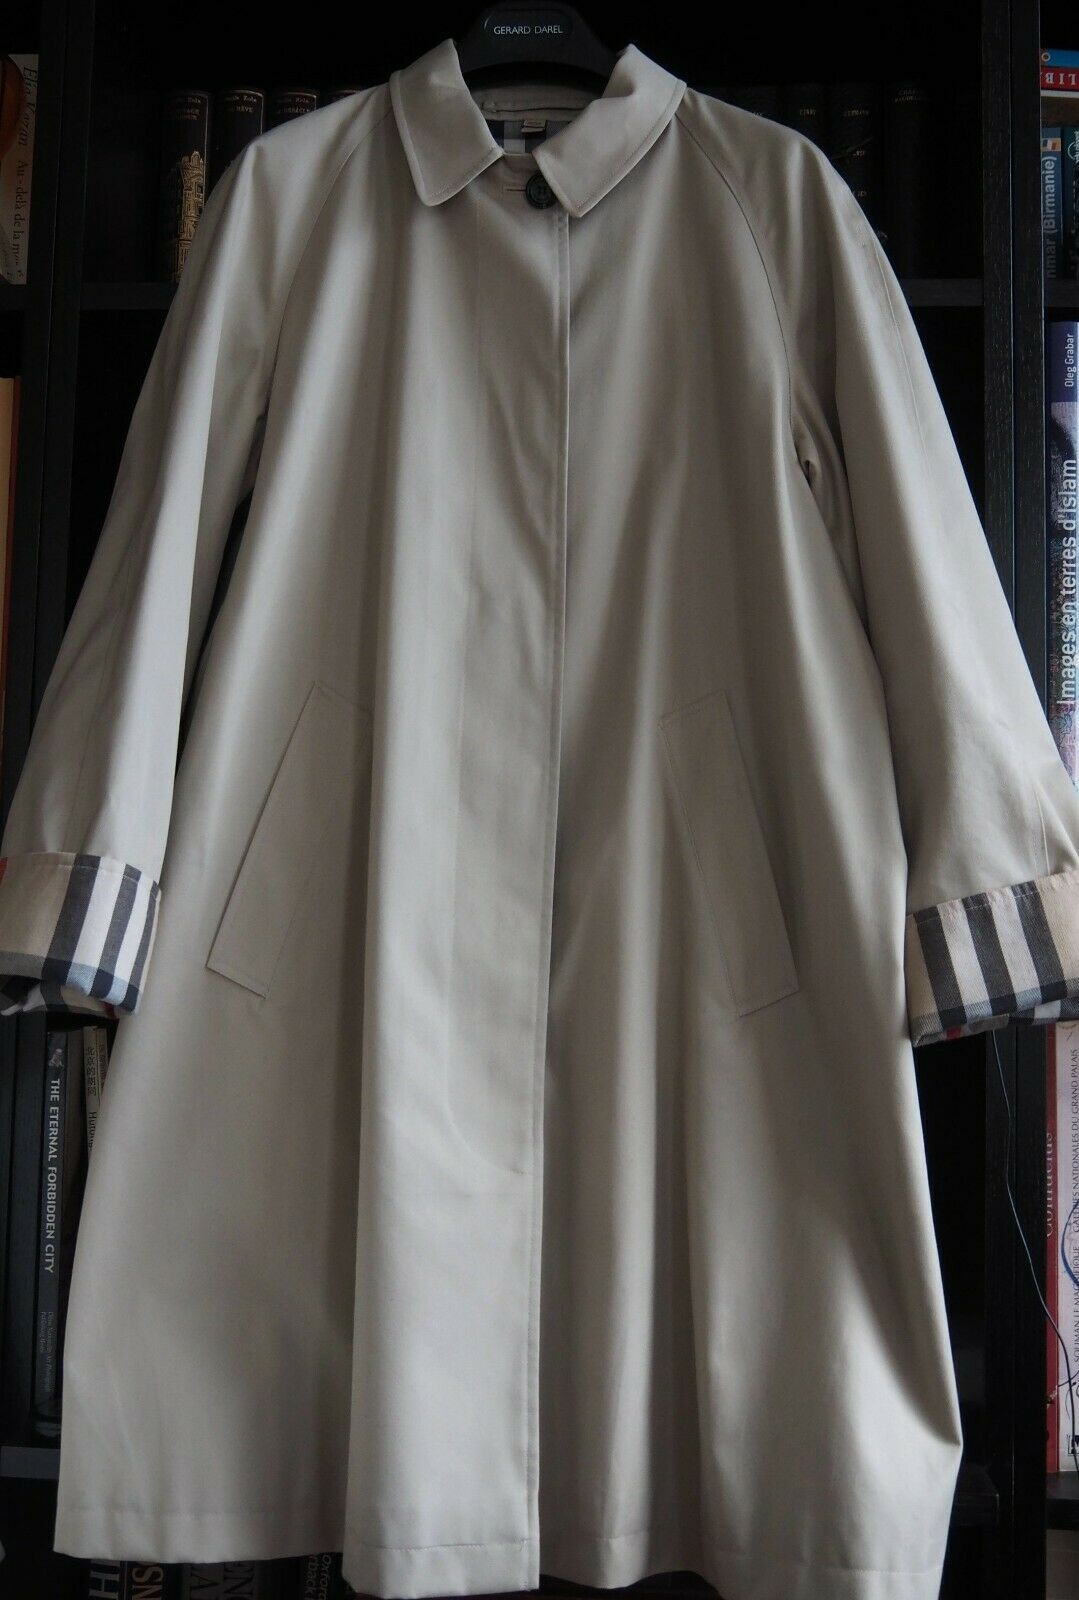 Burberry authentique imperméable trench t40